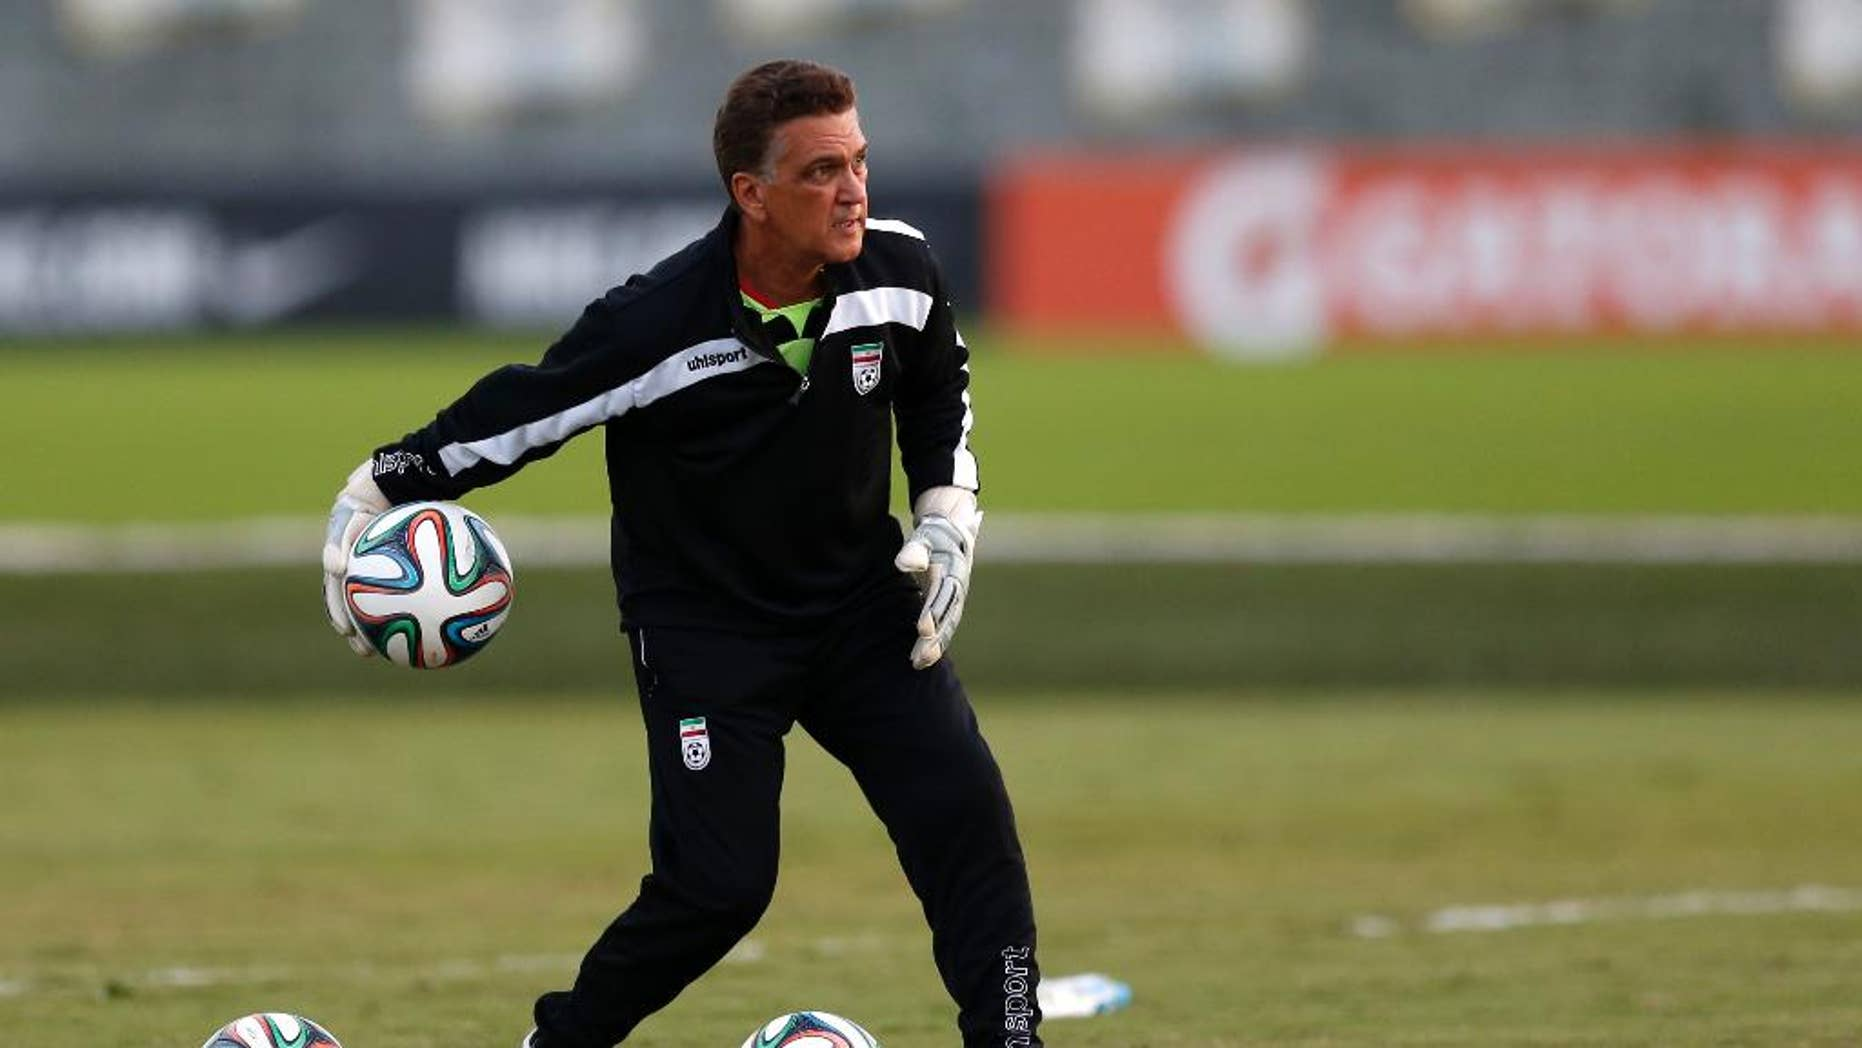 FILE - In this June 8, 2014 file photo, Iran goalkeepers coach Dan Gaspar works with goalies after an international soccer friendly against Trinidad and Tobago in Sao Paulo, Brazil. The 58-year-old Gaspar is from Connecticut. His players, however, speak mostly Farsi.  (AP Photo/Julio Cortez, File)